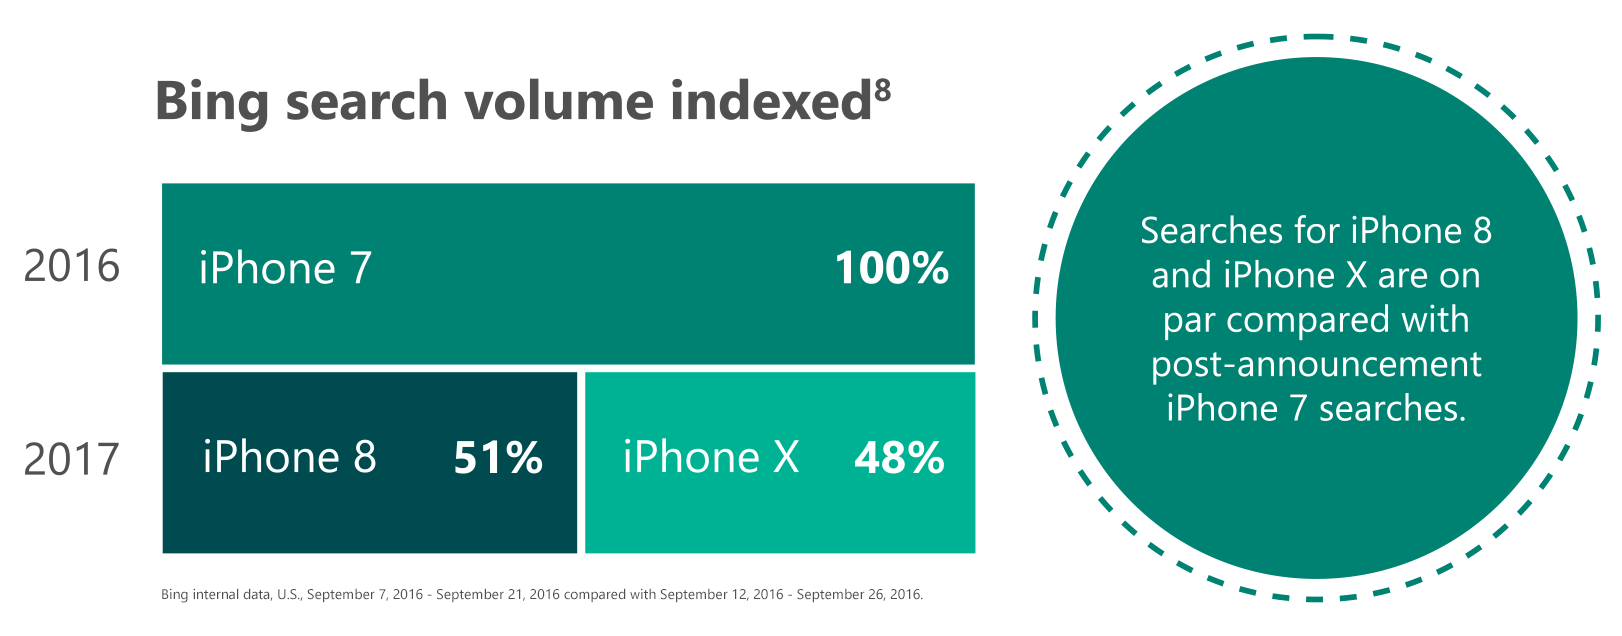 Graph #2: Bing search volume indexed